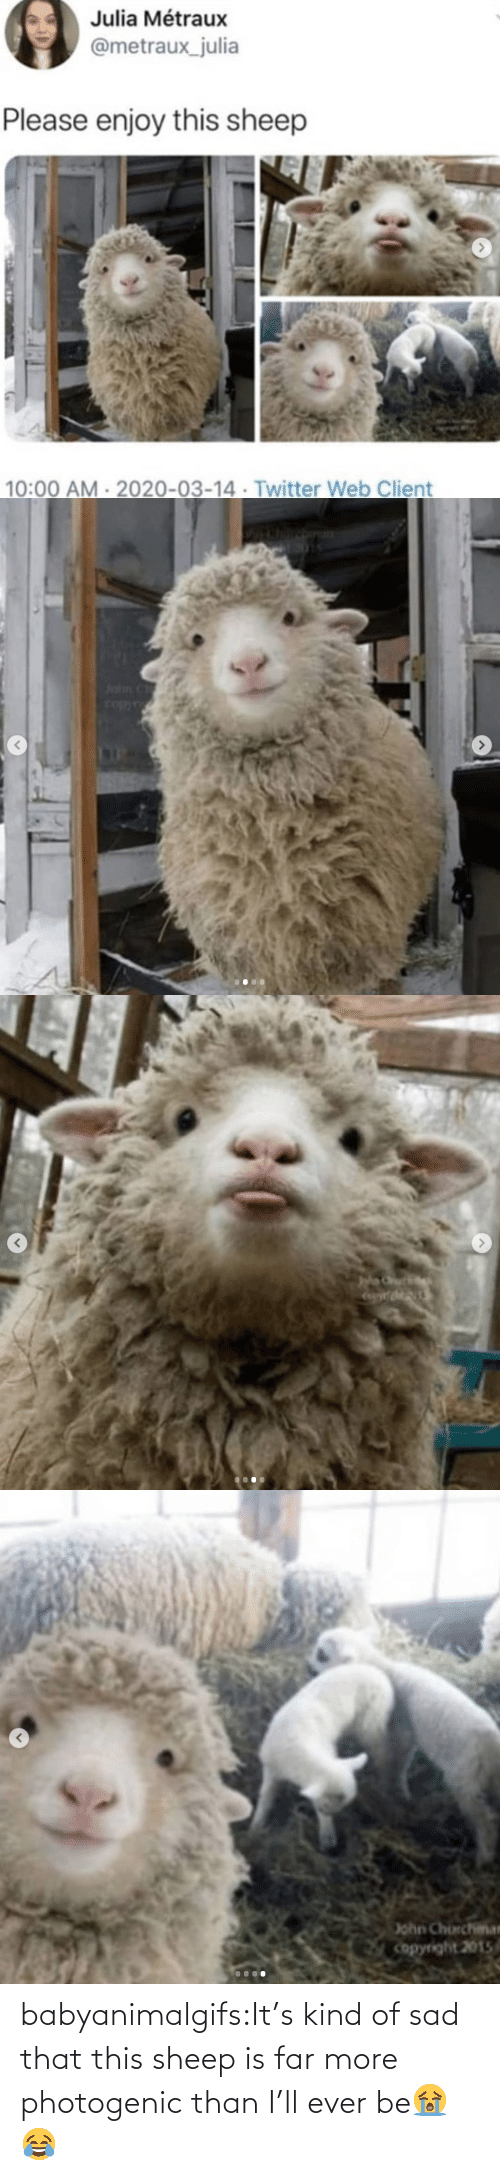 Sad: babyanimalgifs:It's kind of sad that this sheep is far more photogenic than I'll ever be😭😂